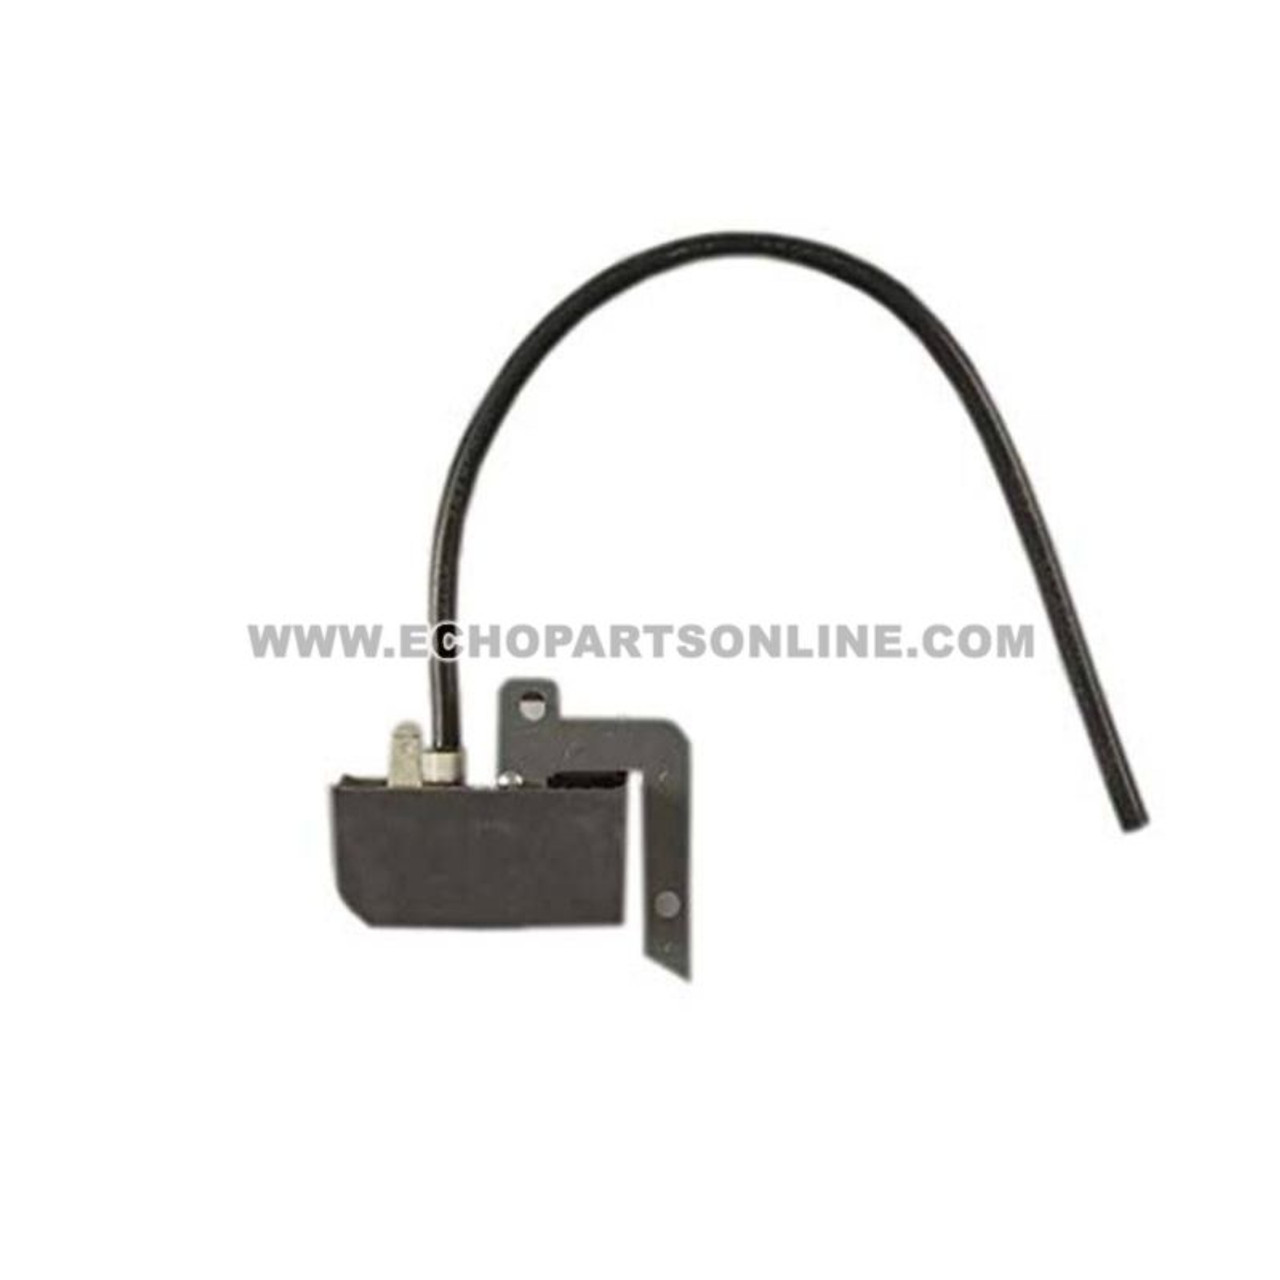 ECHO A411000021 - COIL IGNITION - Image 1